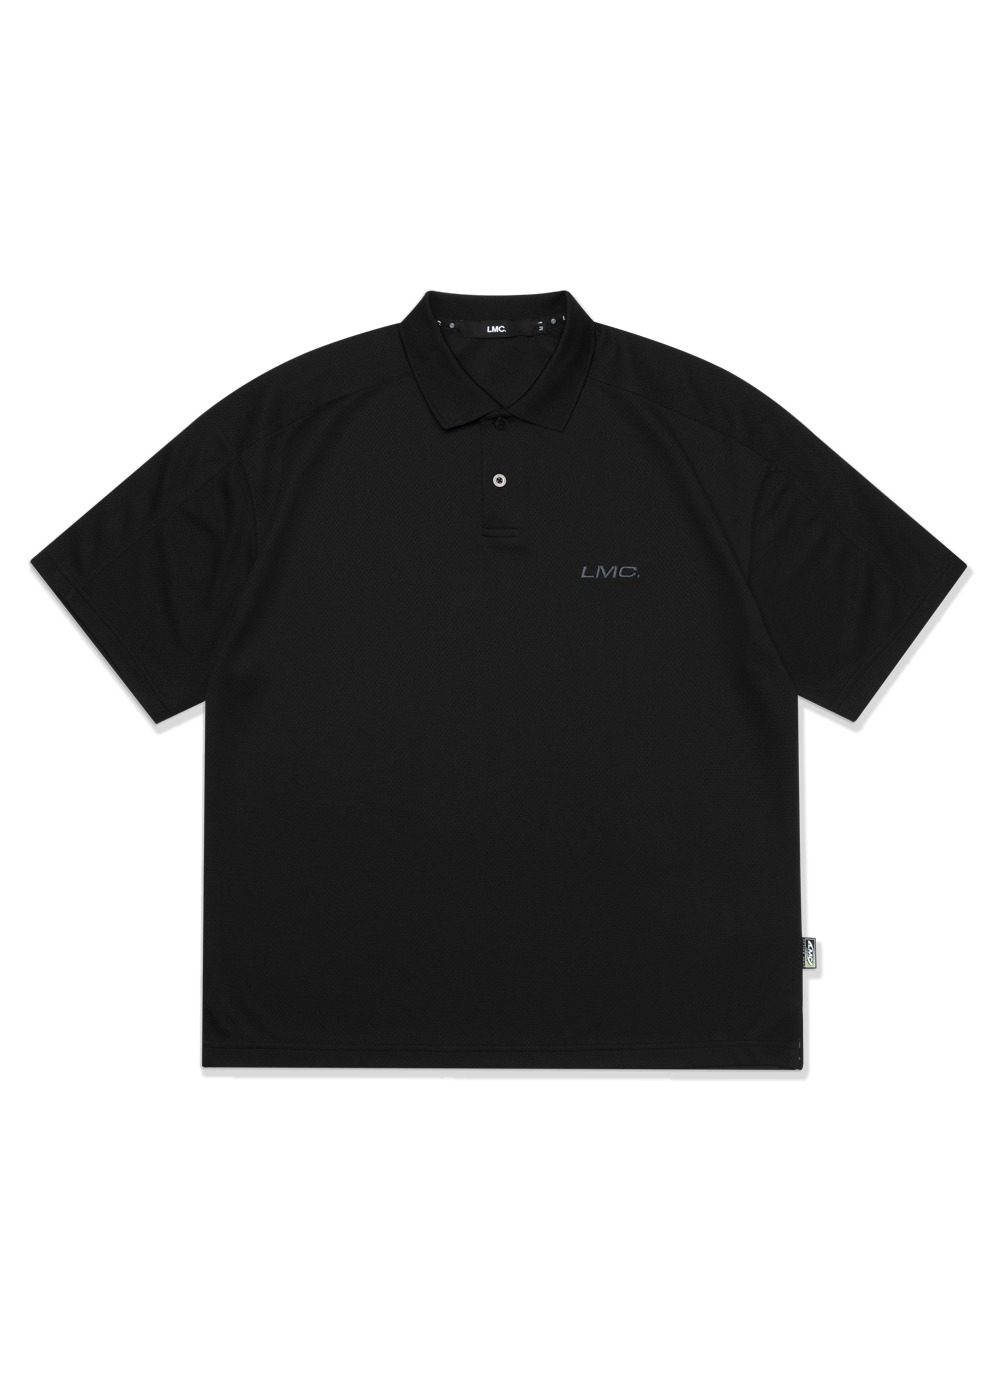 LMC ACTIVE GEAR MESH POLO SHIRT black